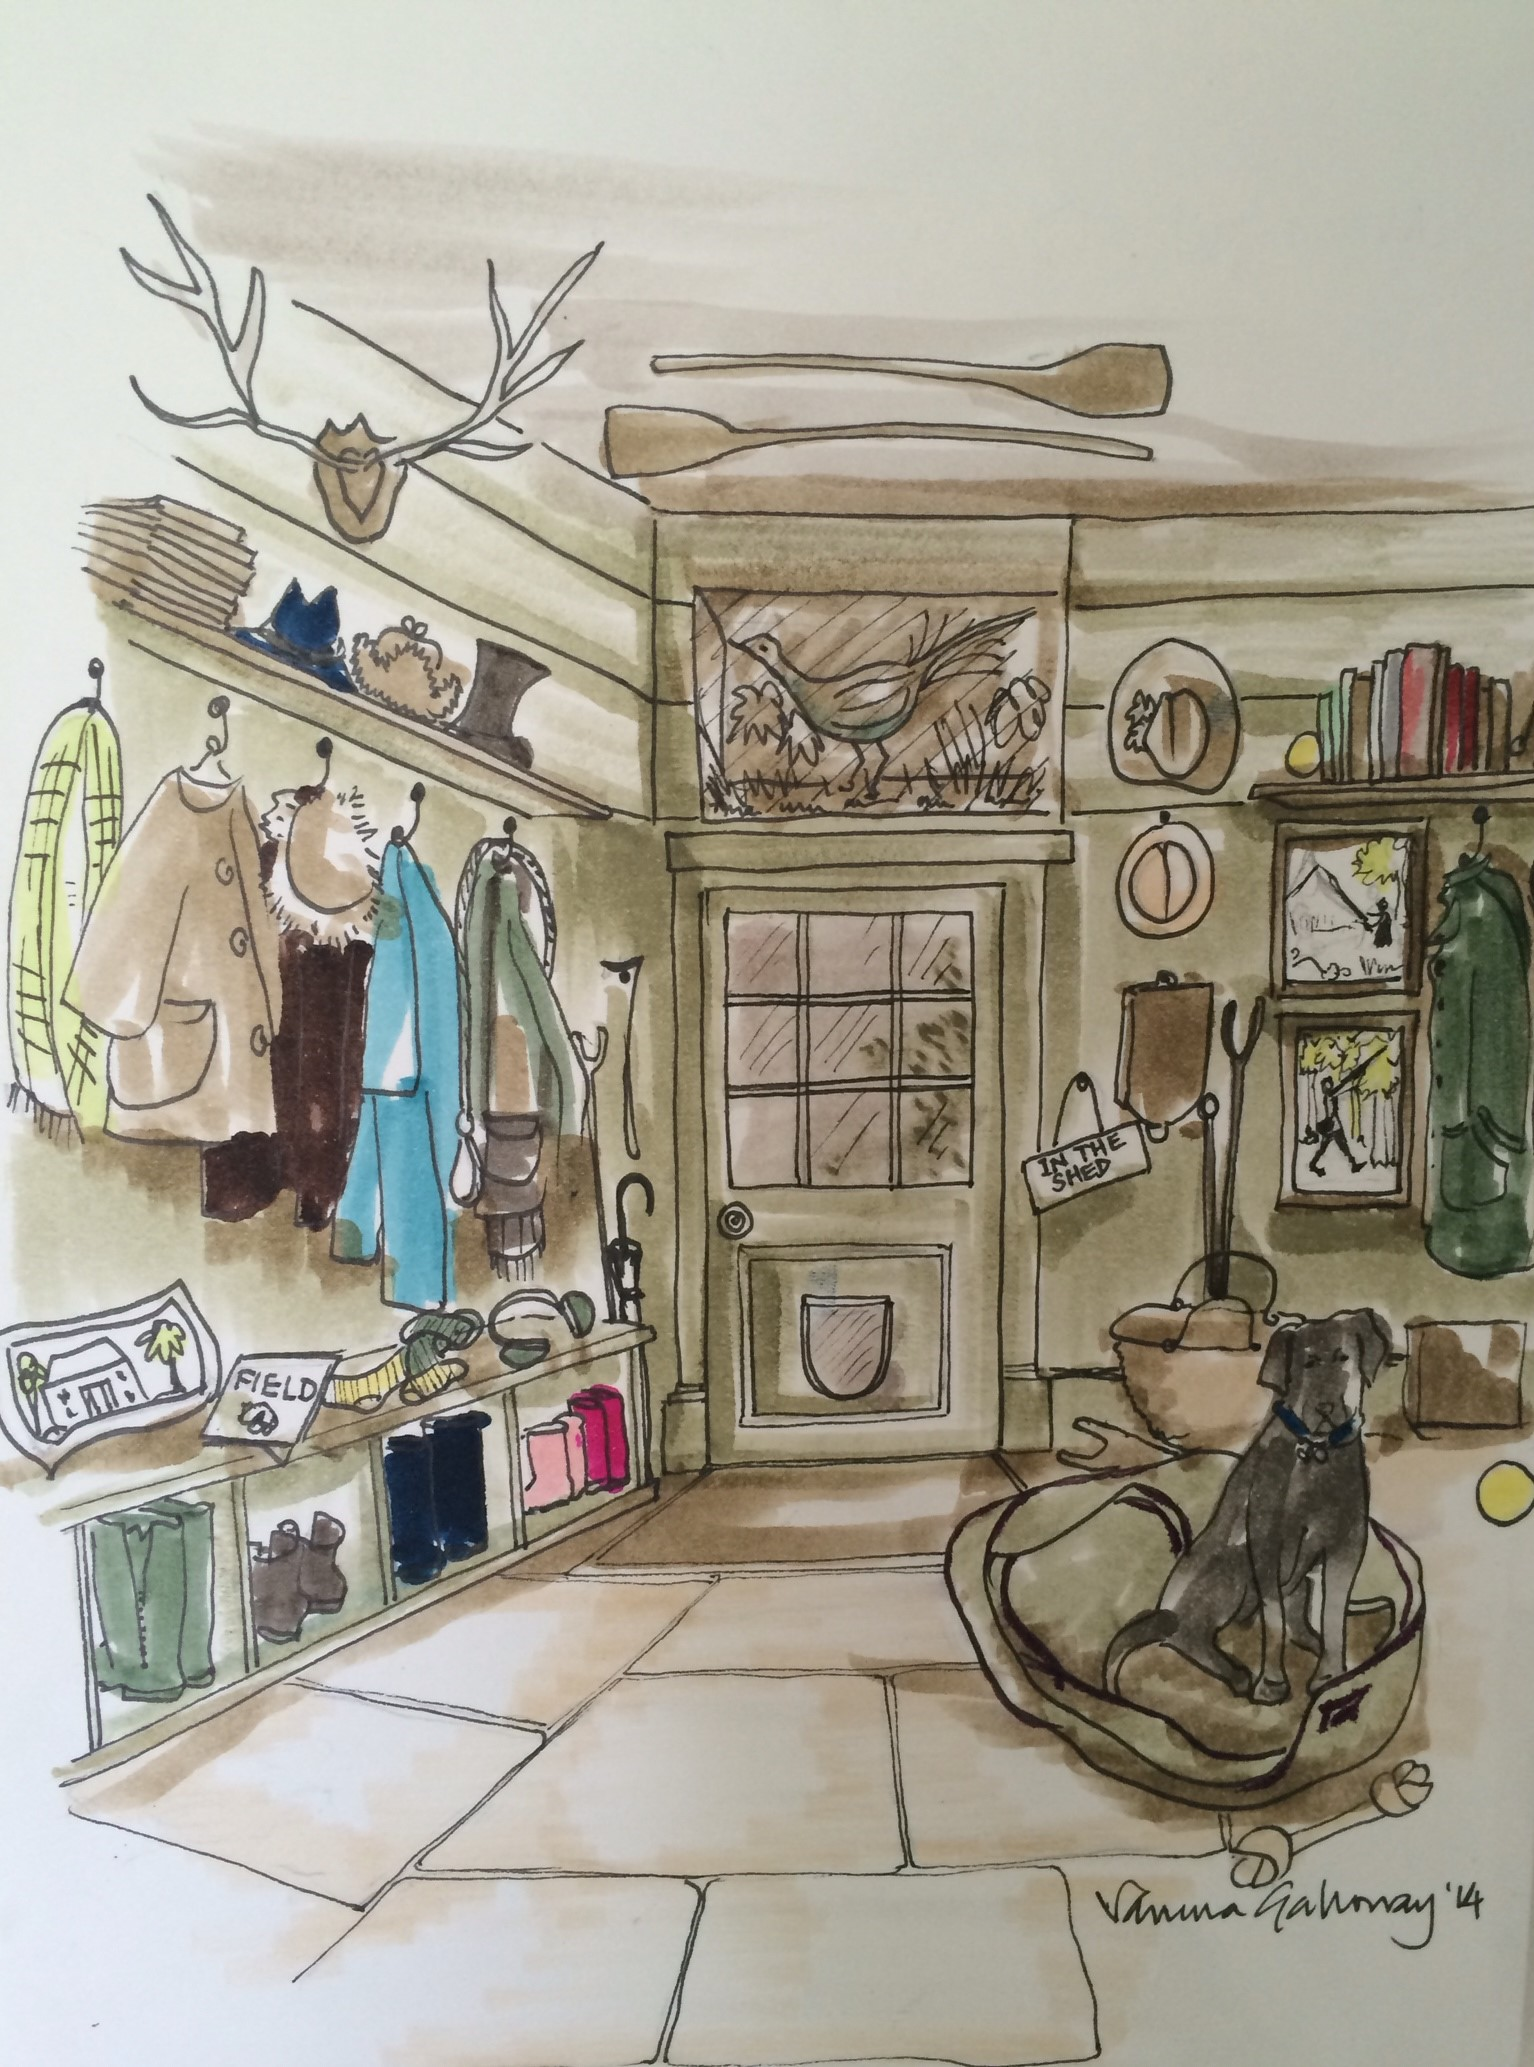 Lot 55 - Vanessa Galloway illustration of interior, pen and watercolour on card. Interior designer and house